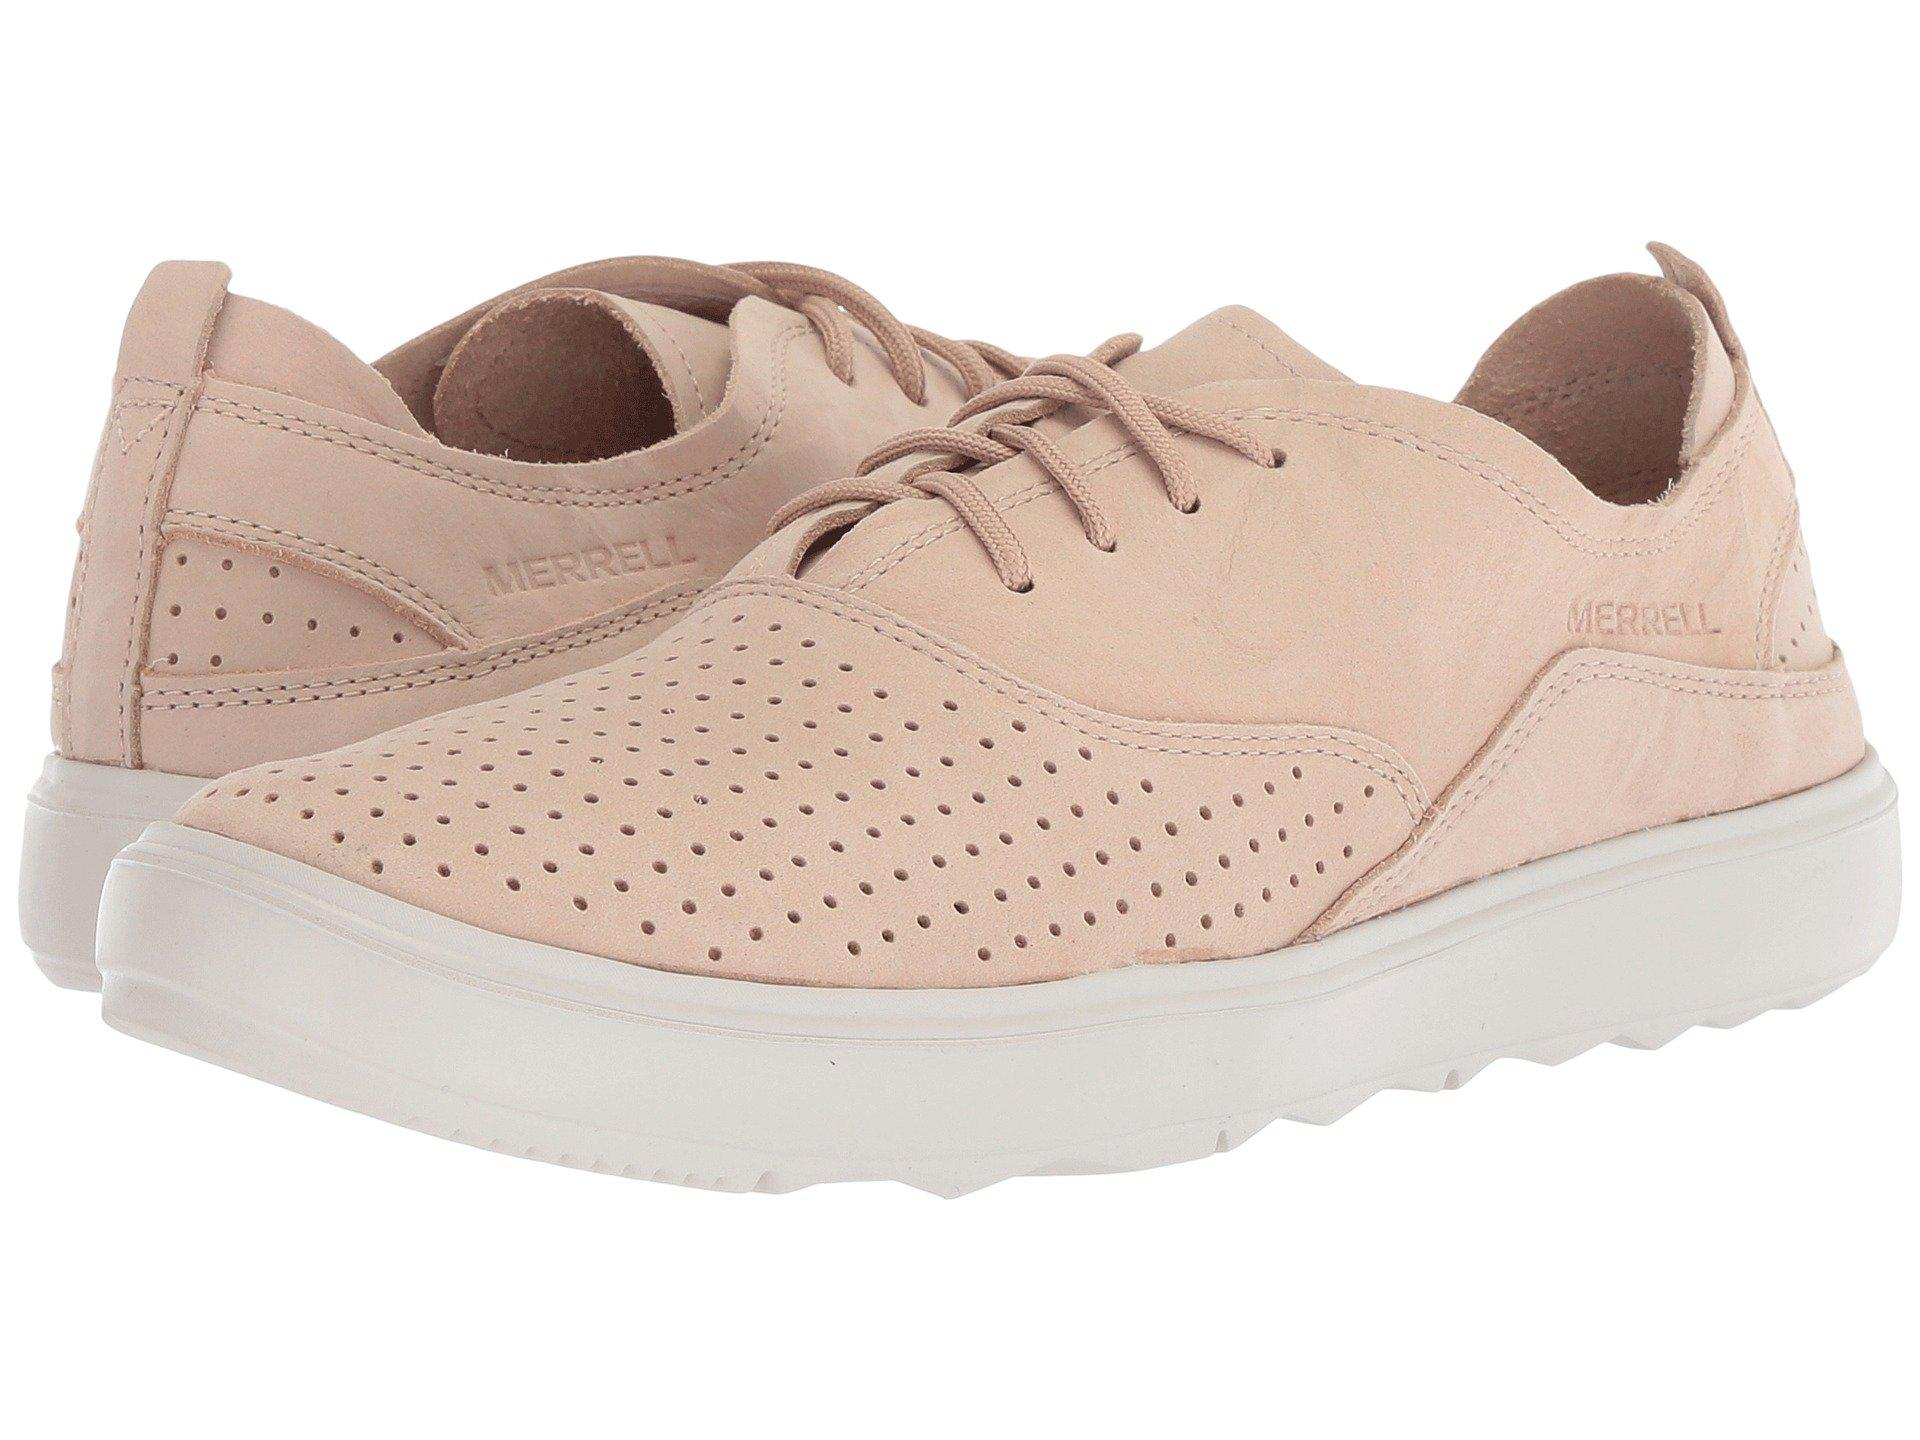 Merrell Around Town City Lace Air wAzIVm3vW